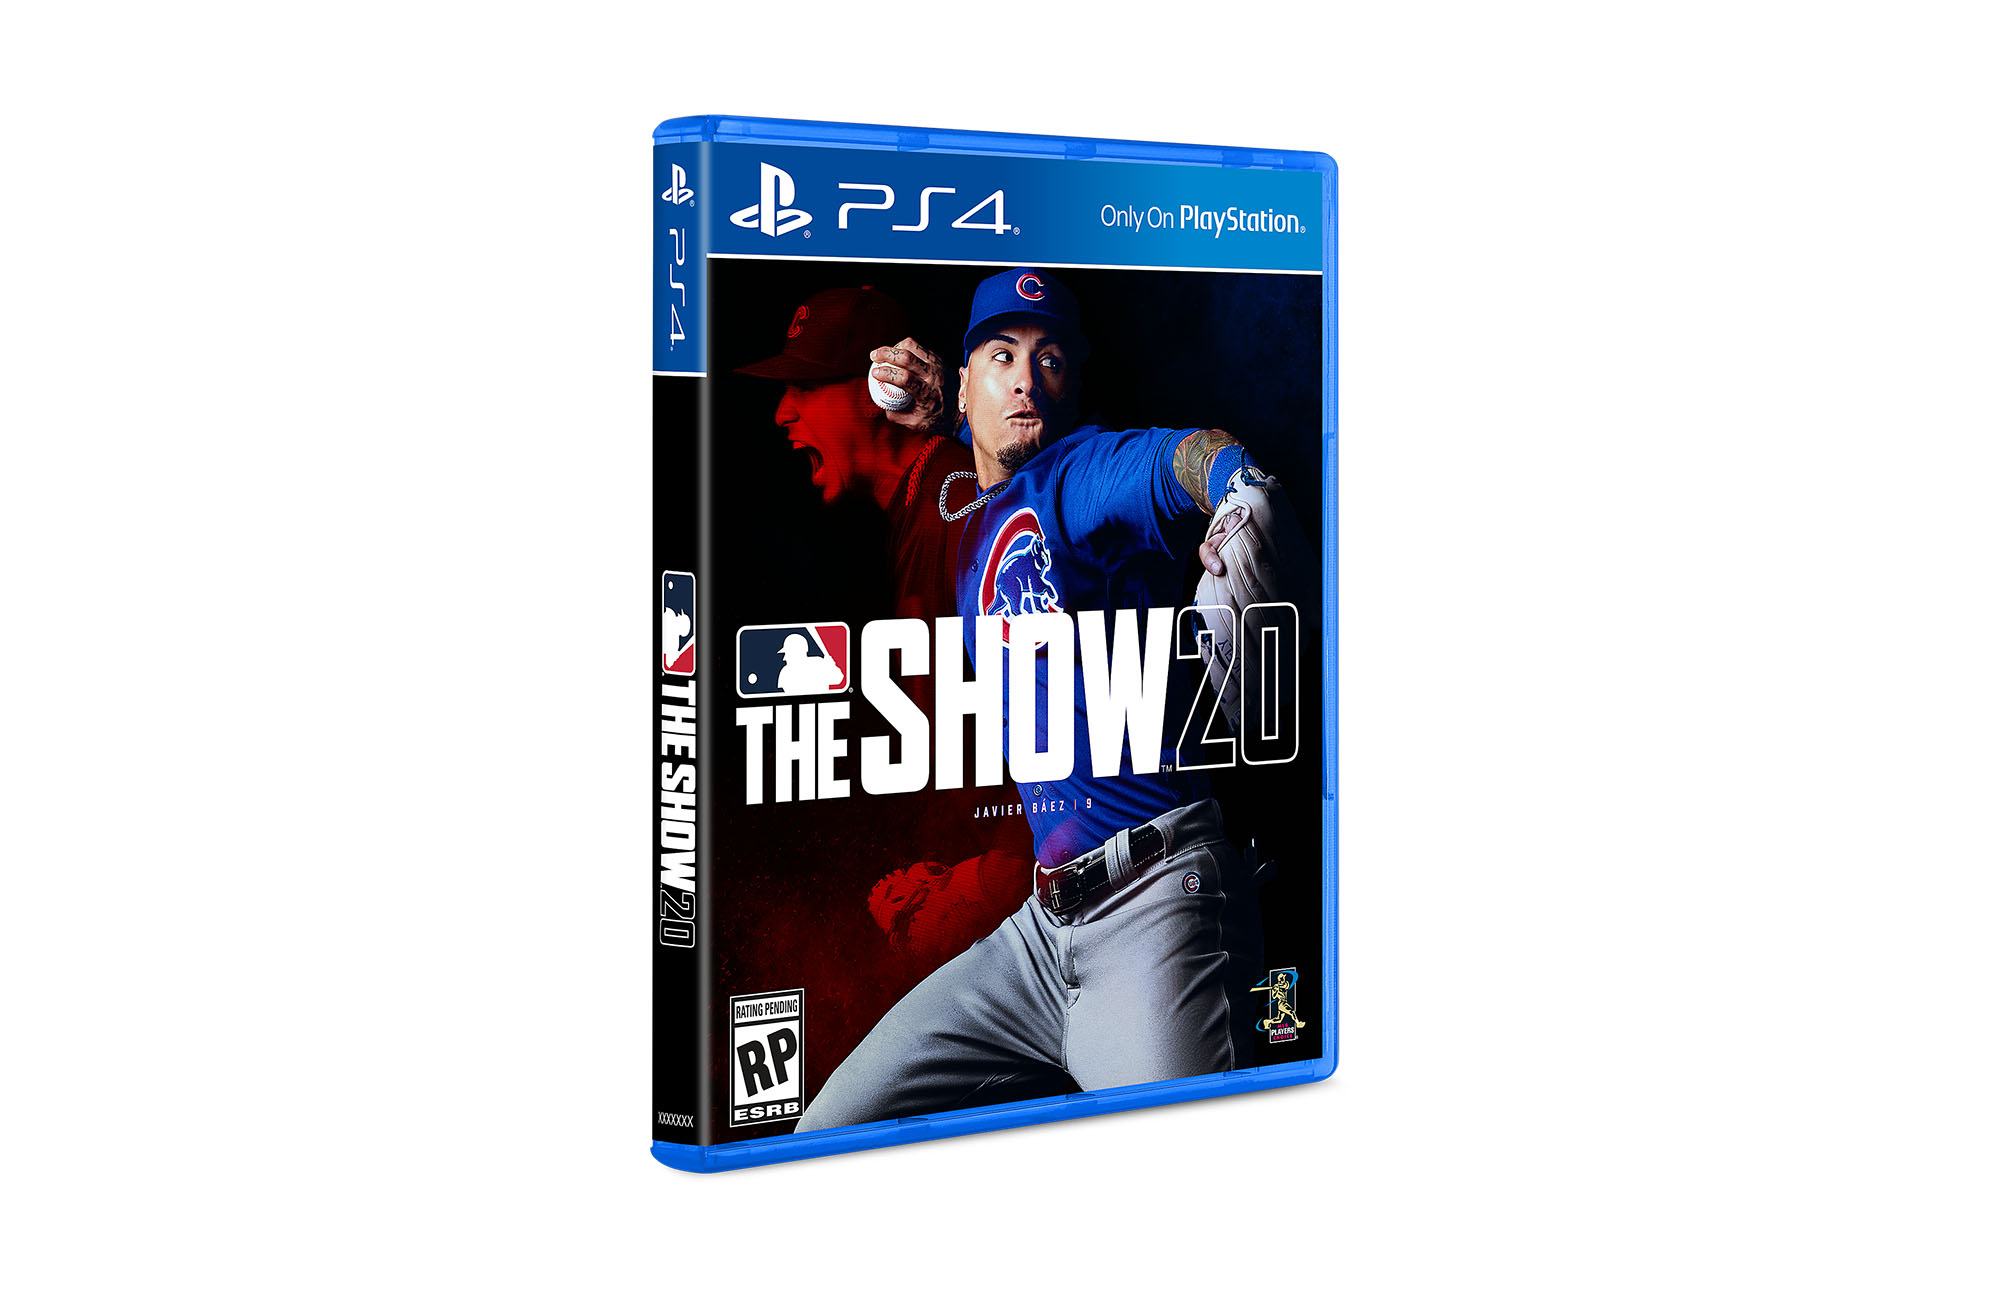 mlb the show 20 standard edition pack shot left angle 01 ps4 15oct19 en us